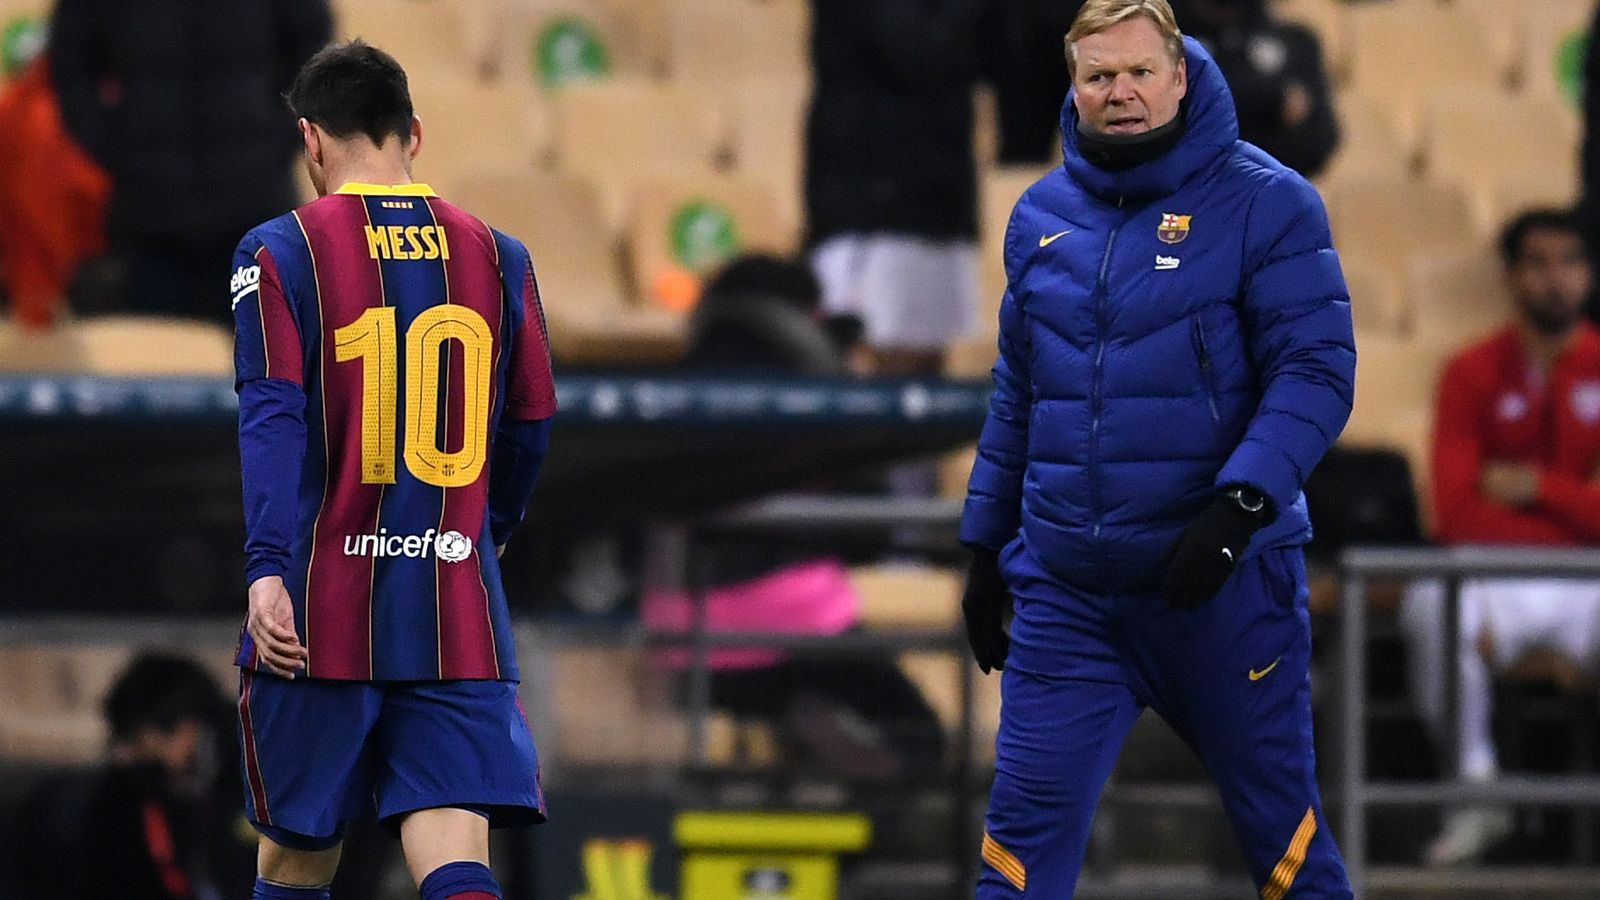 Barcelona 2-3 Athletic Bilbao: Lionel Messi sent off for lashing out in Super Cup defeat